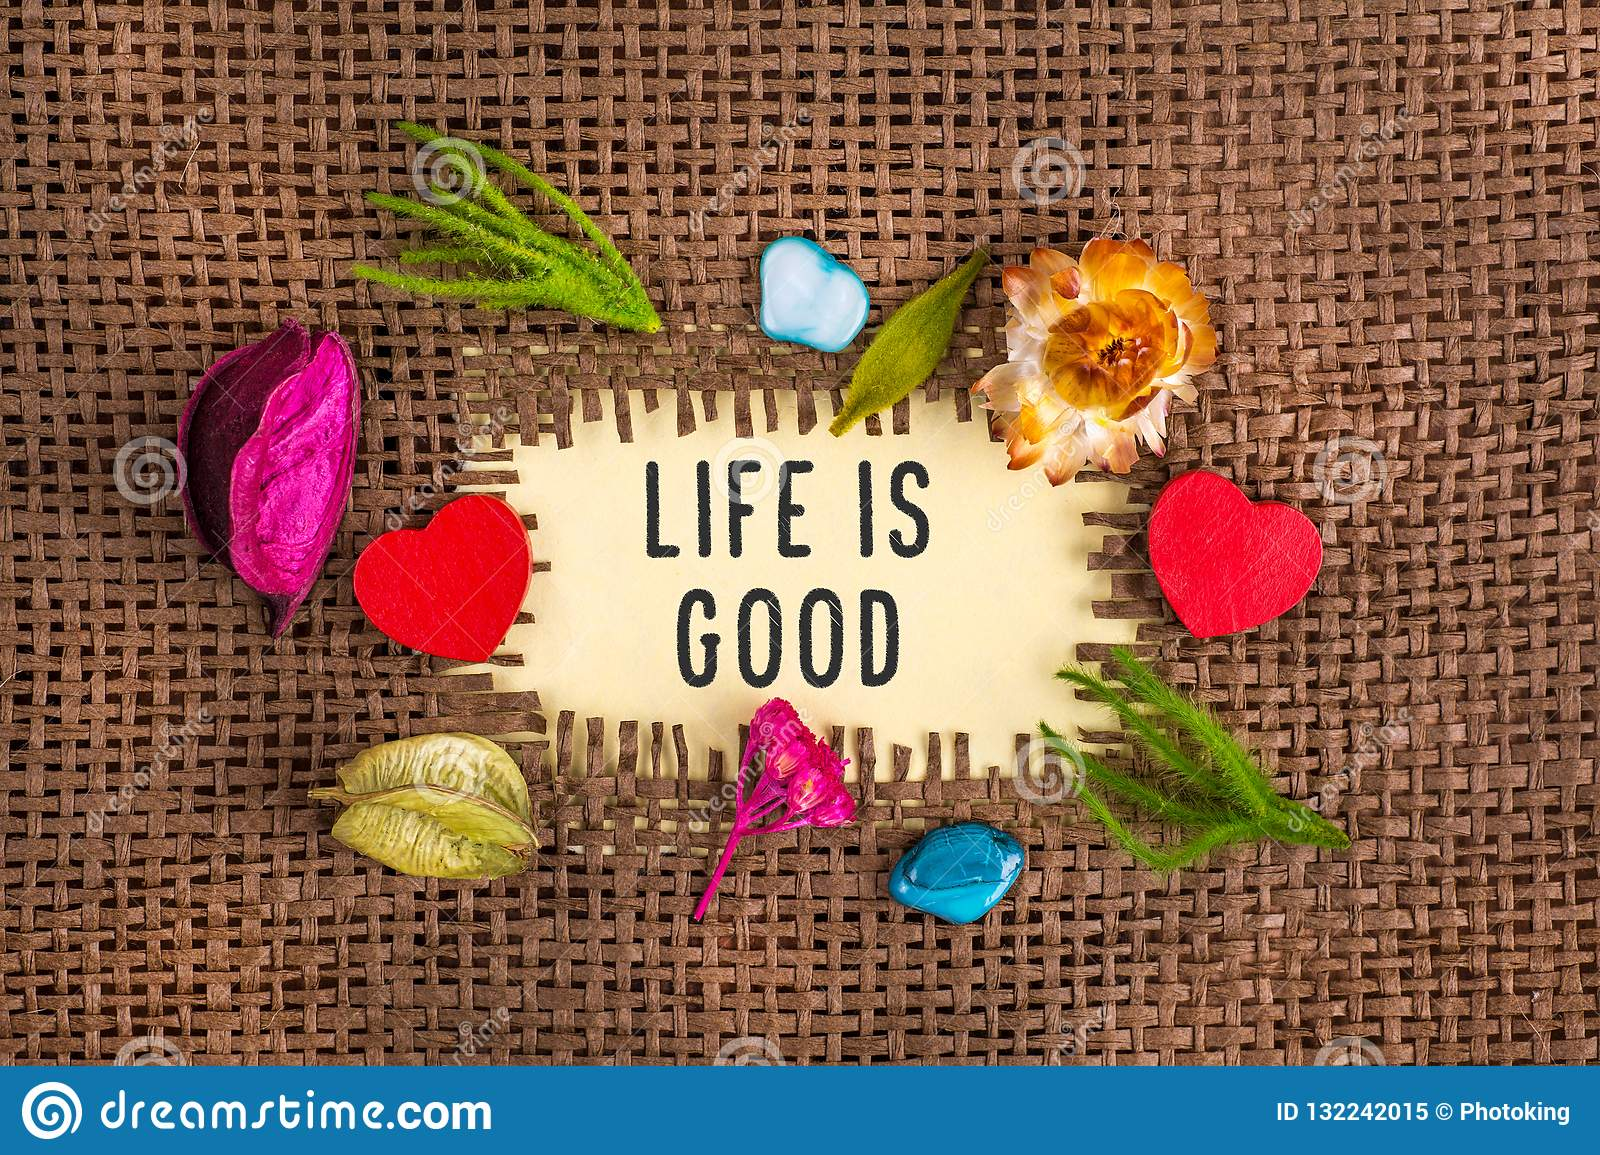 Life is good written in hole on the burlap